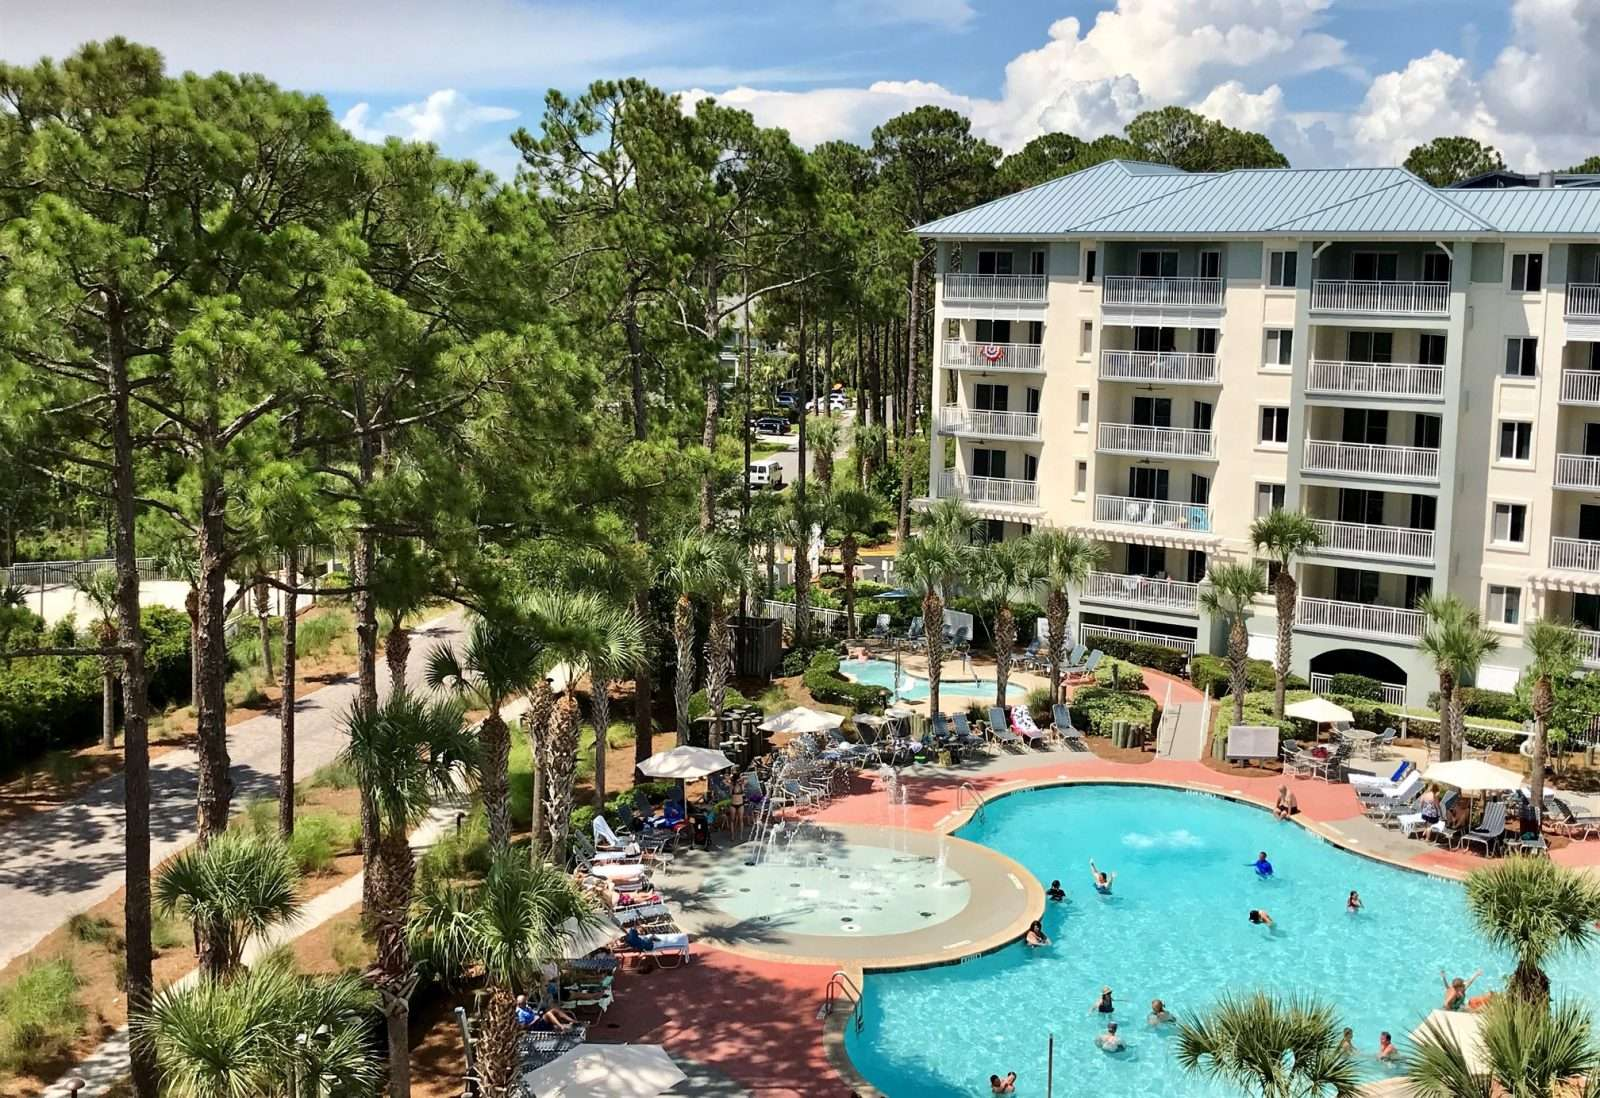 The exterior of SurfWatch, a vacation club rental in Hilton Head